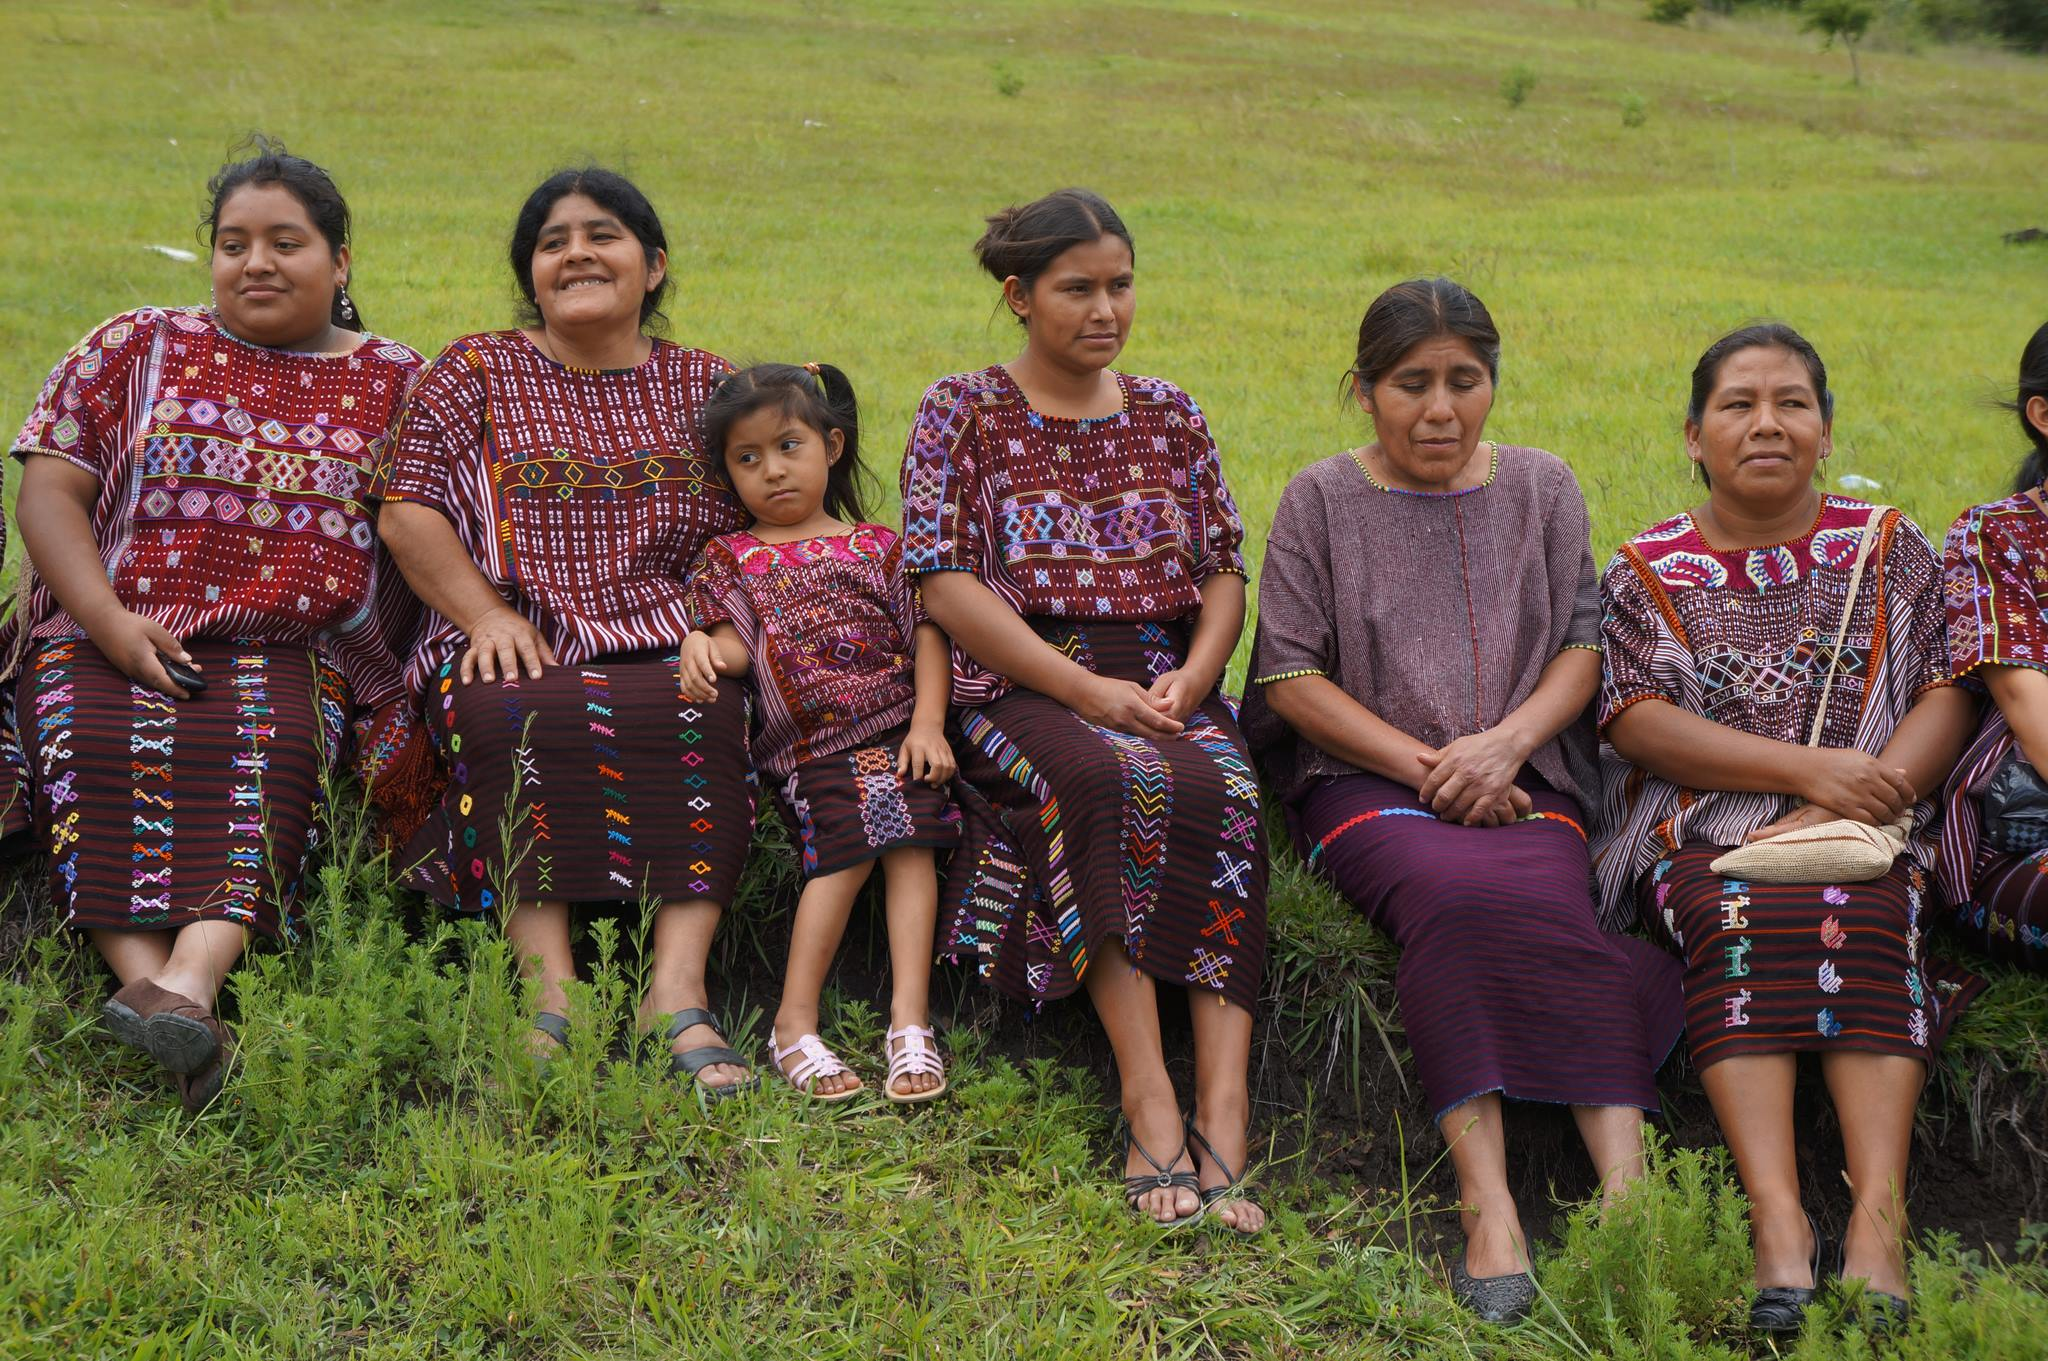 Women weavers of Guatemala